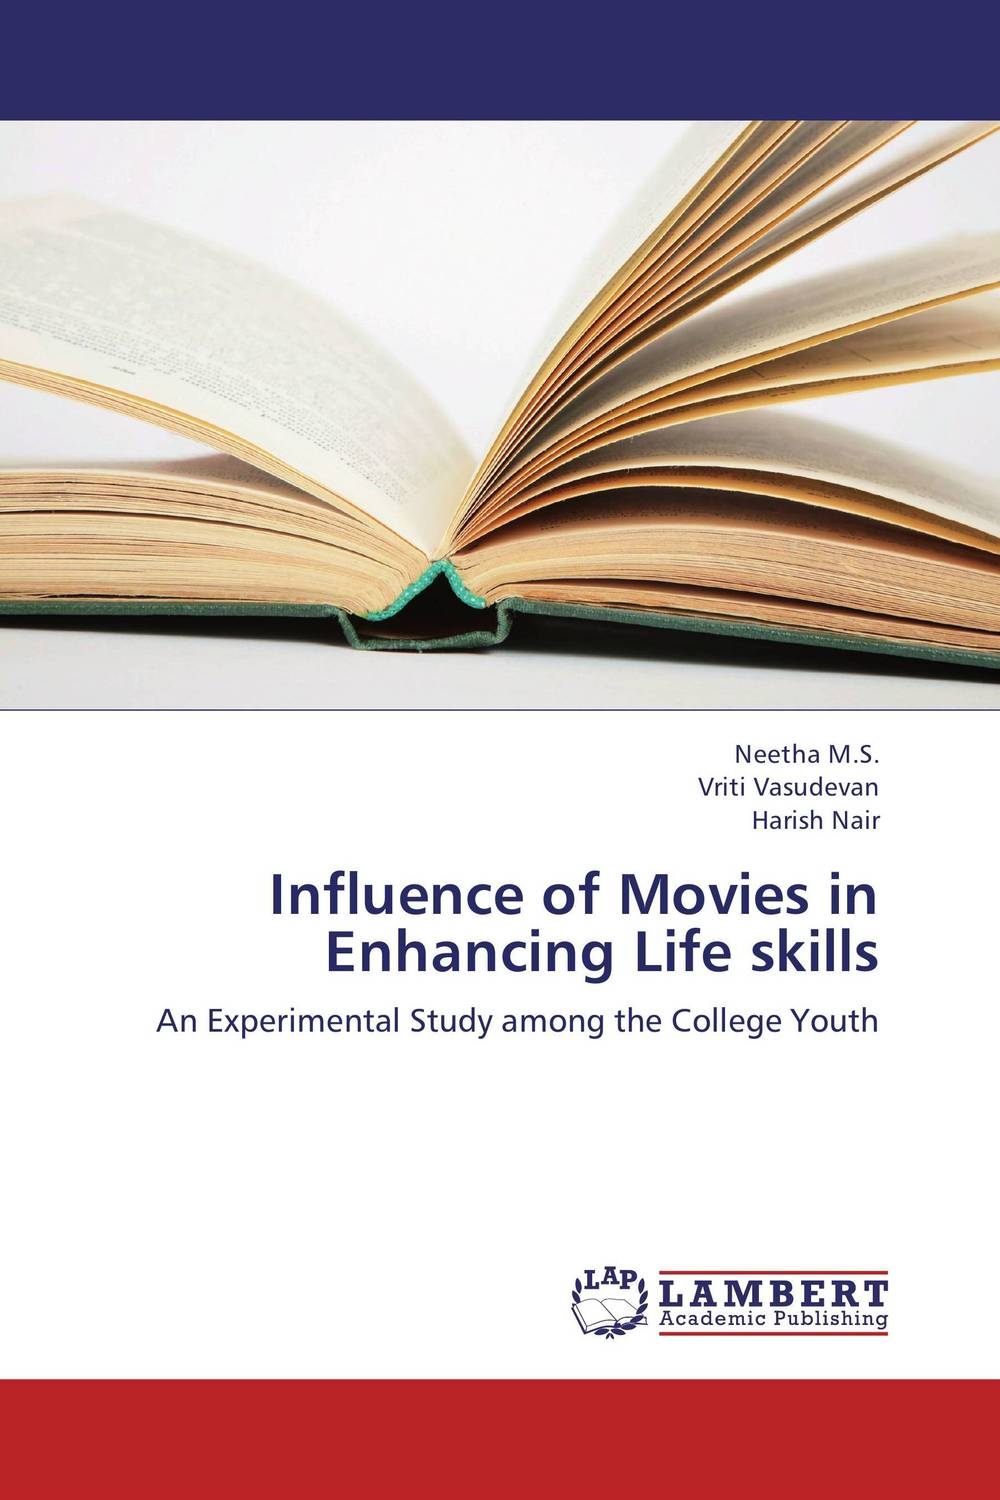 Influence of Movies in Enhancing Life skills father's role in enhancing children's development